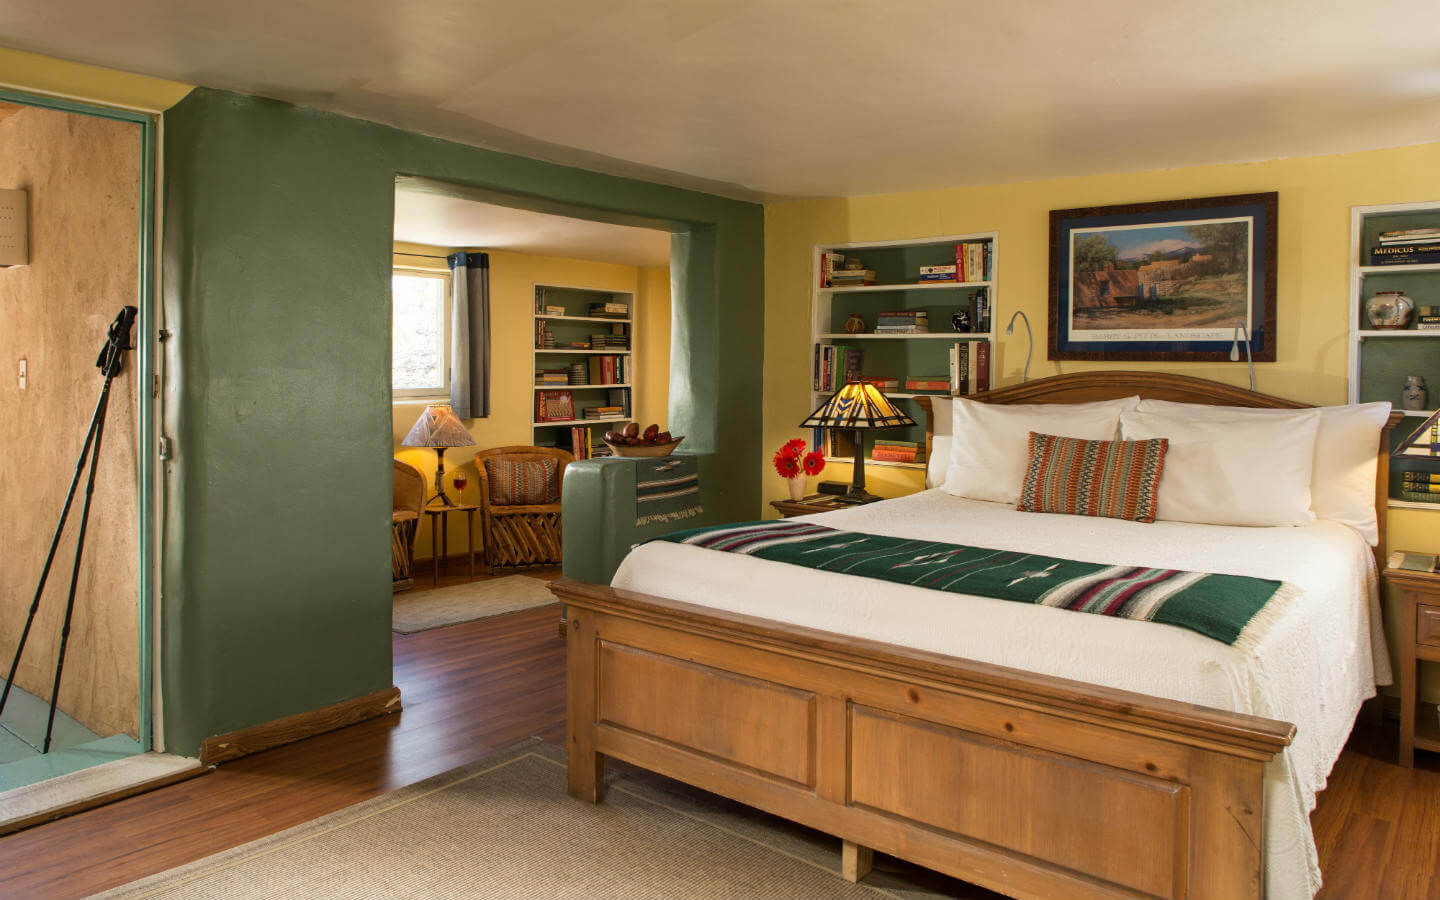 Bed and Breakfast in Santa Fe - D.H. Lawrence Room